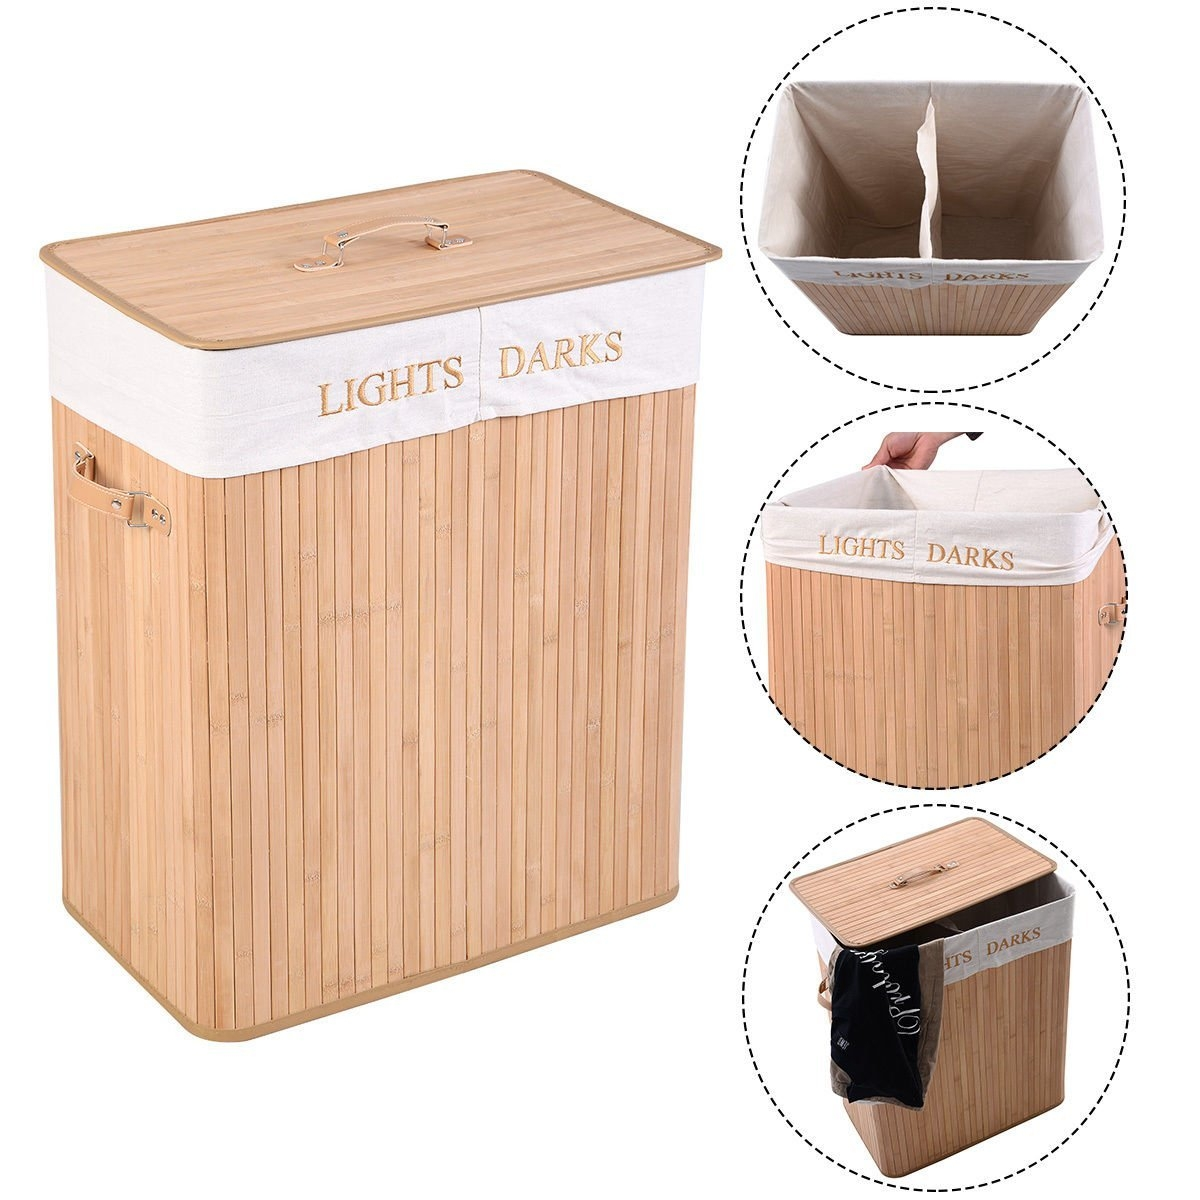 New MTN-G Double Rectangle Bamboo Hamper Laundry Basket Cloth Storage Bag Lid-Brown